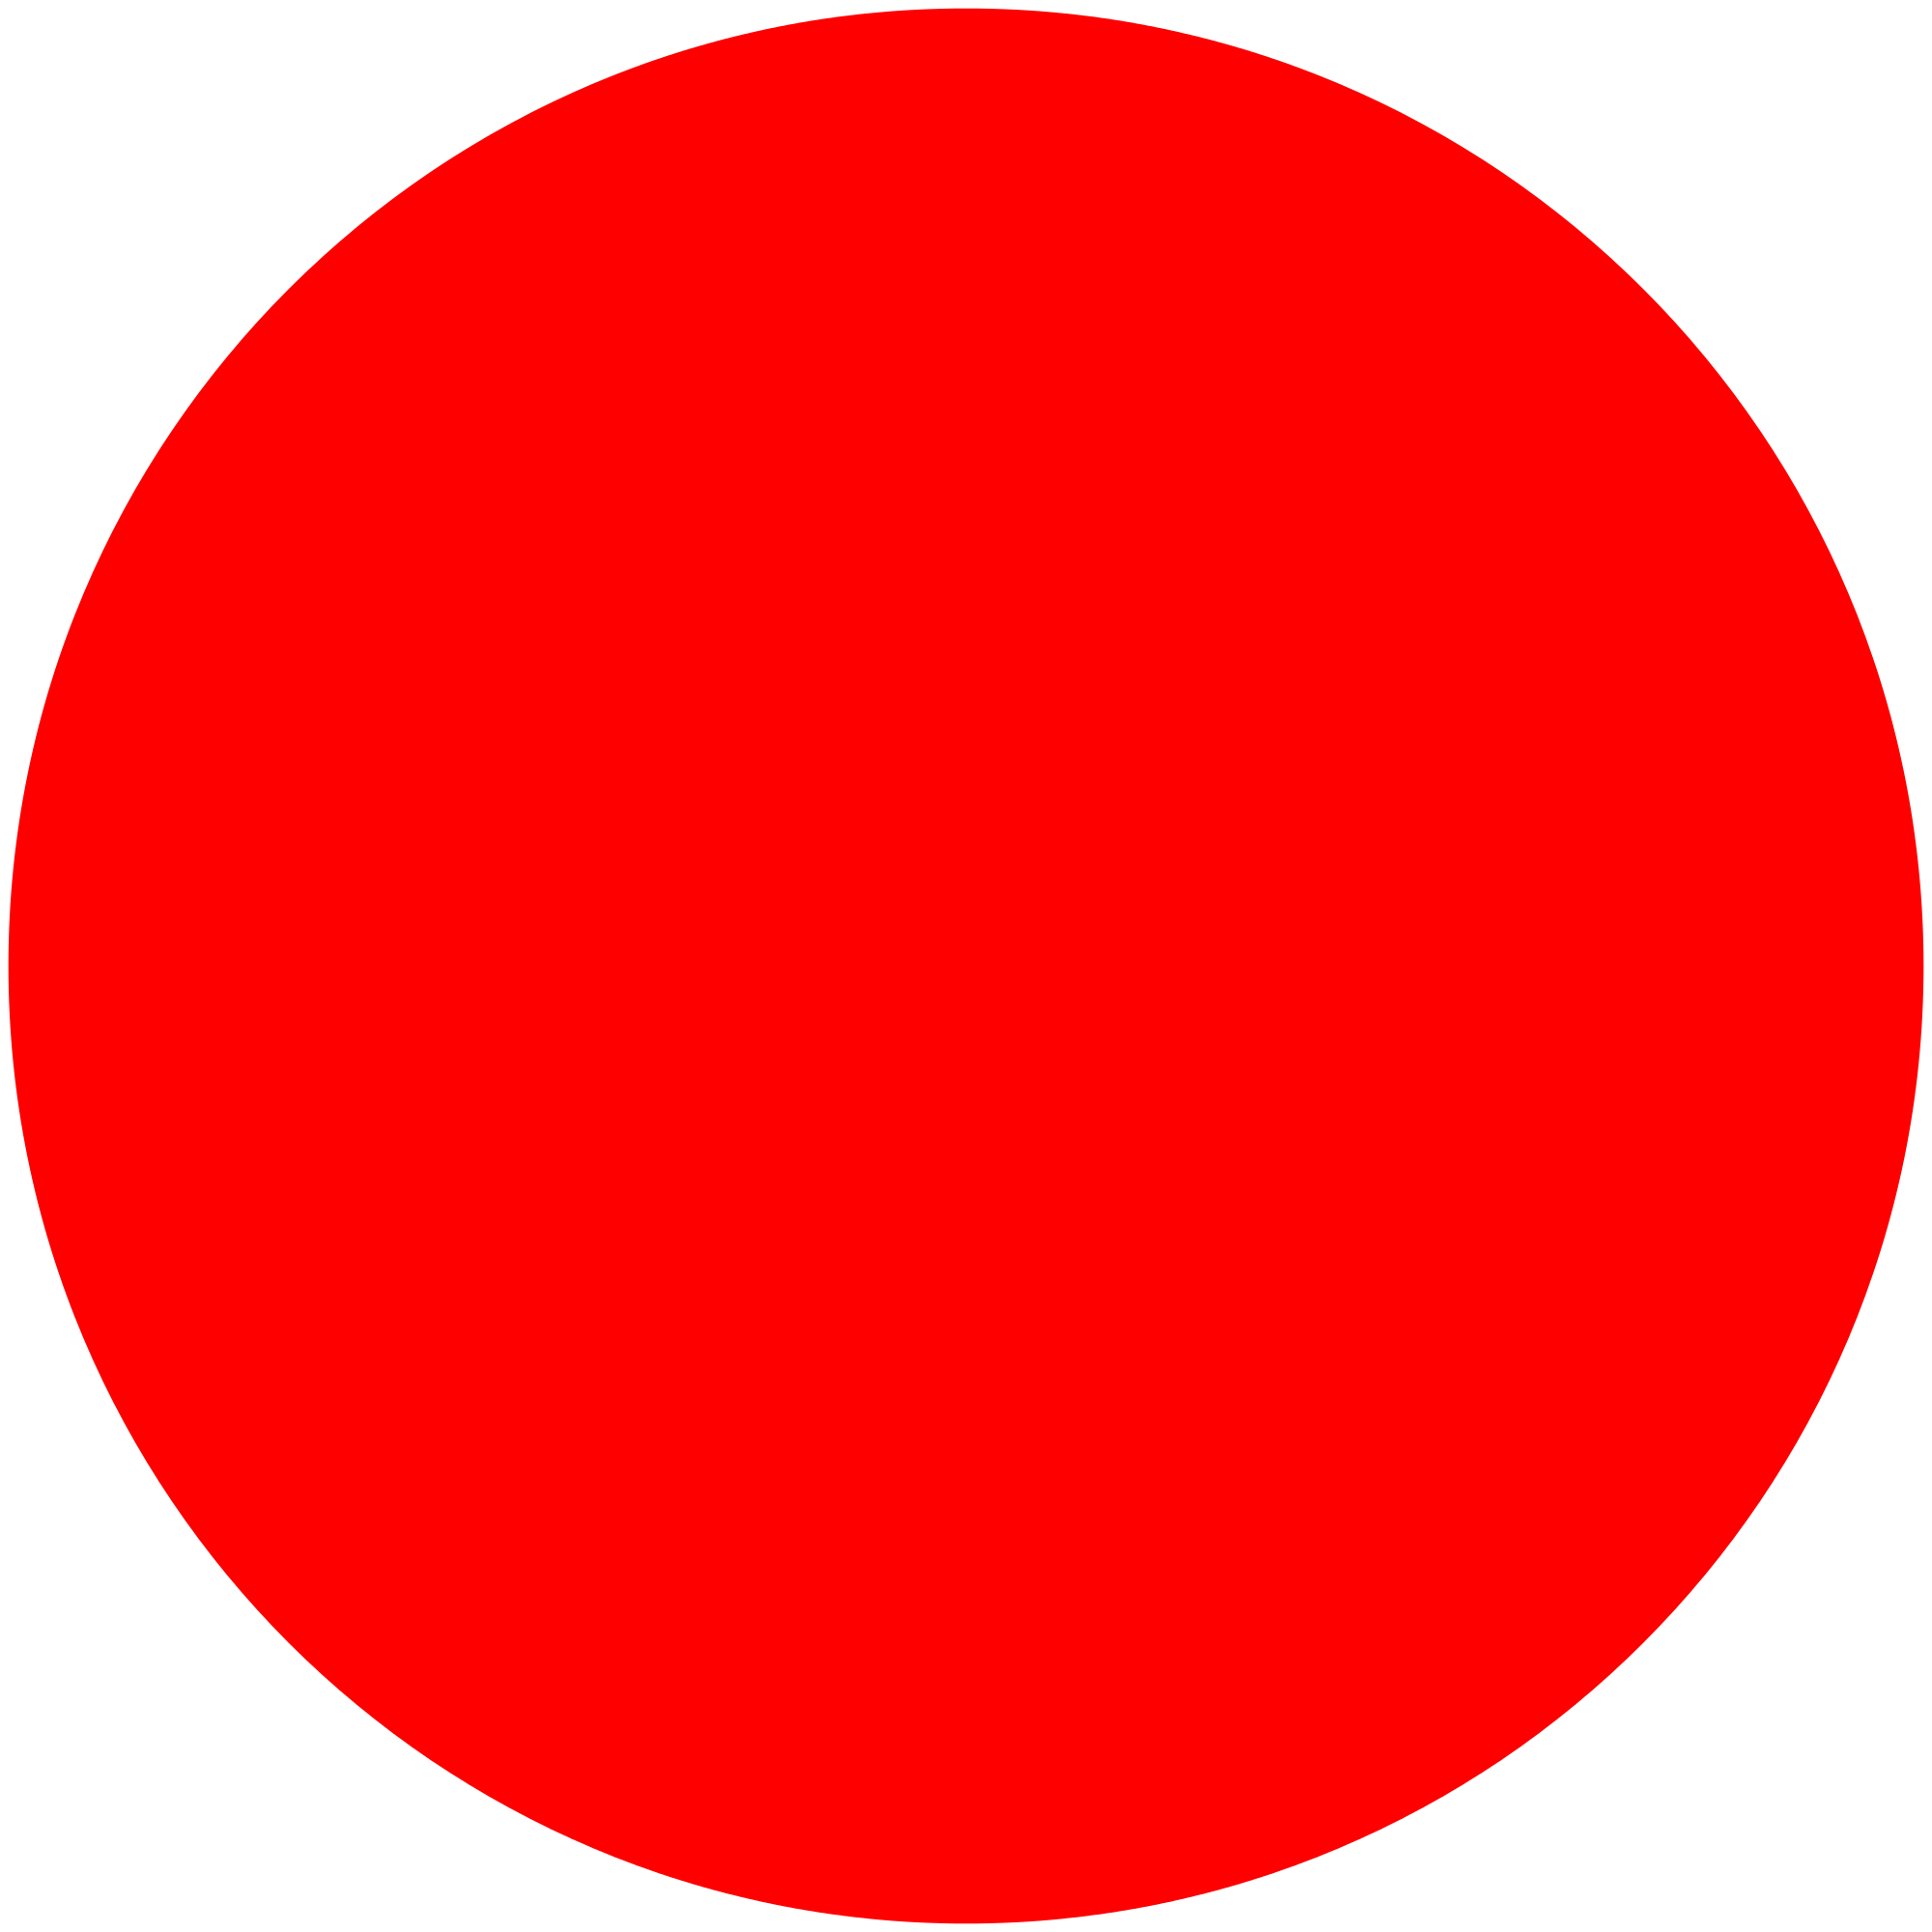 Red png. Circle transparent stickpng